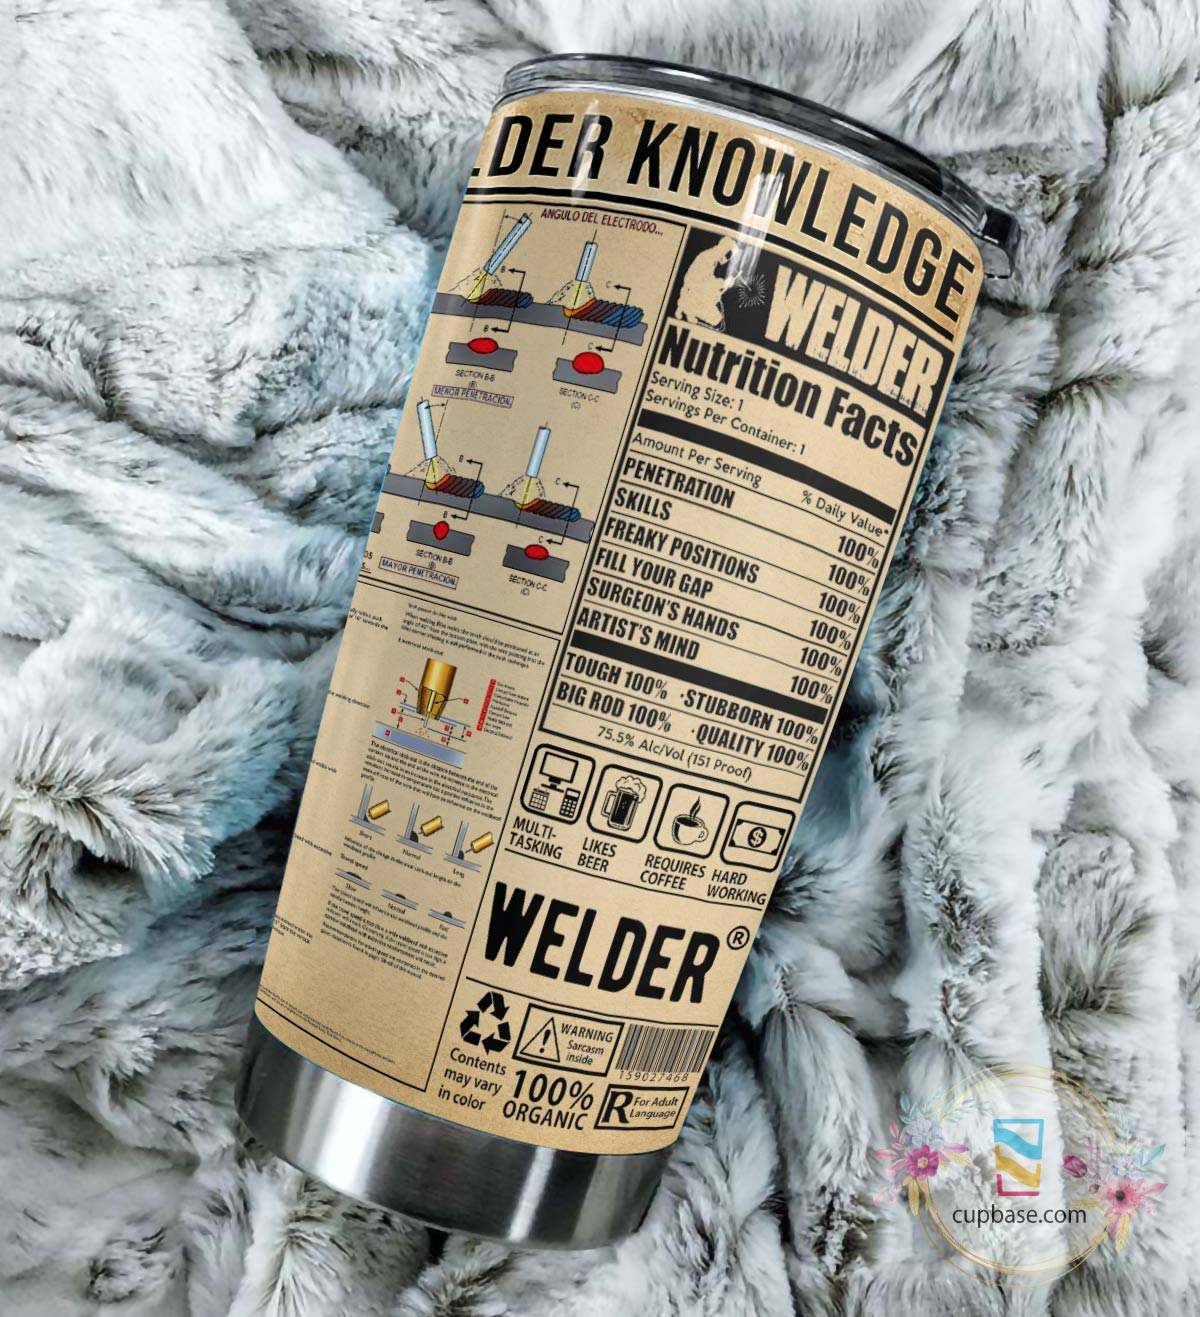 Welder knowledge all over printed tumbler 4